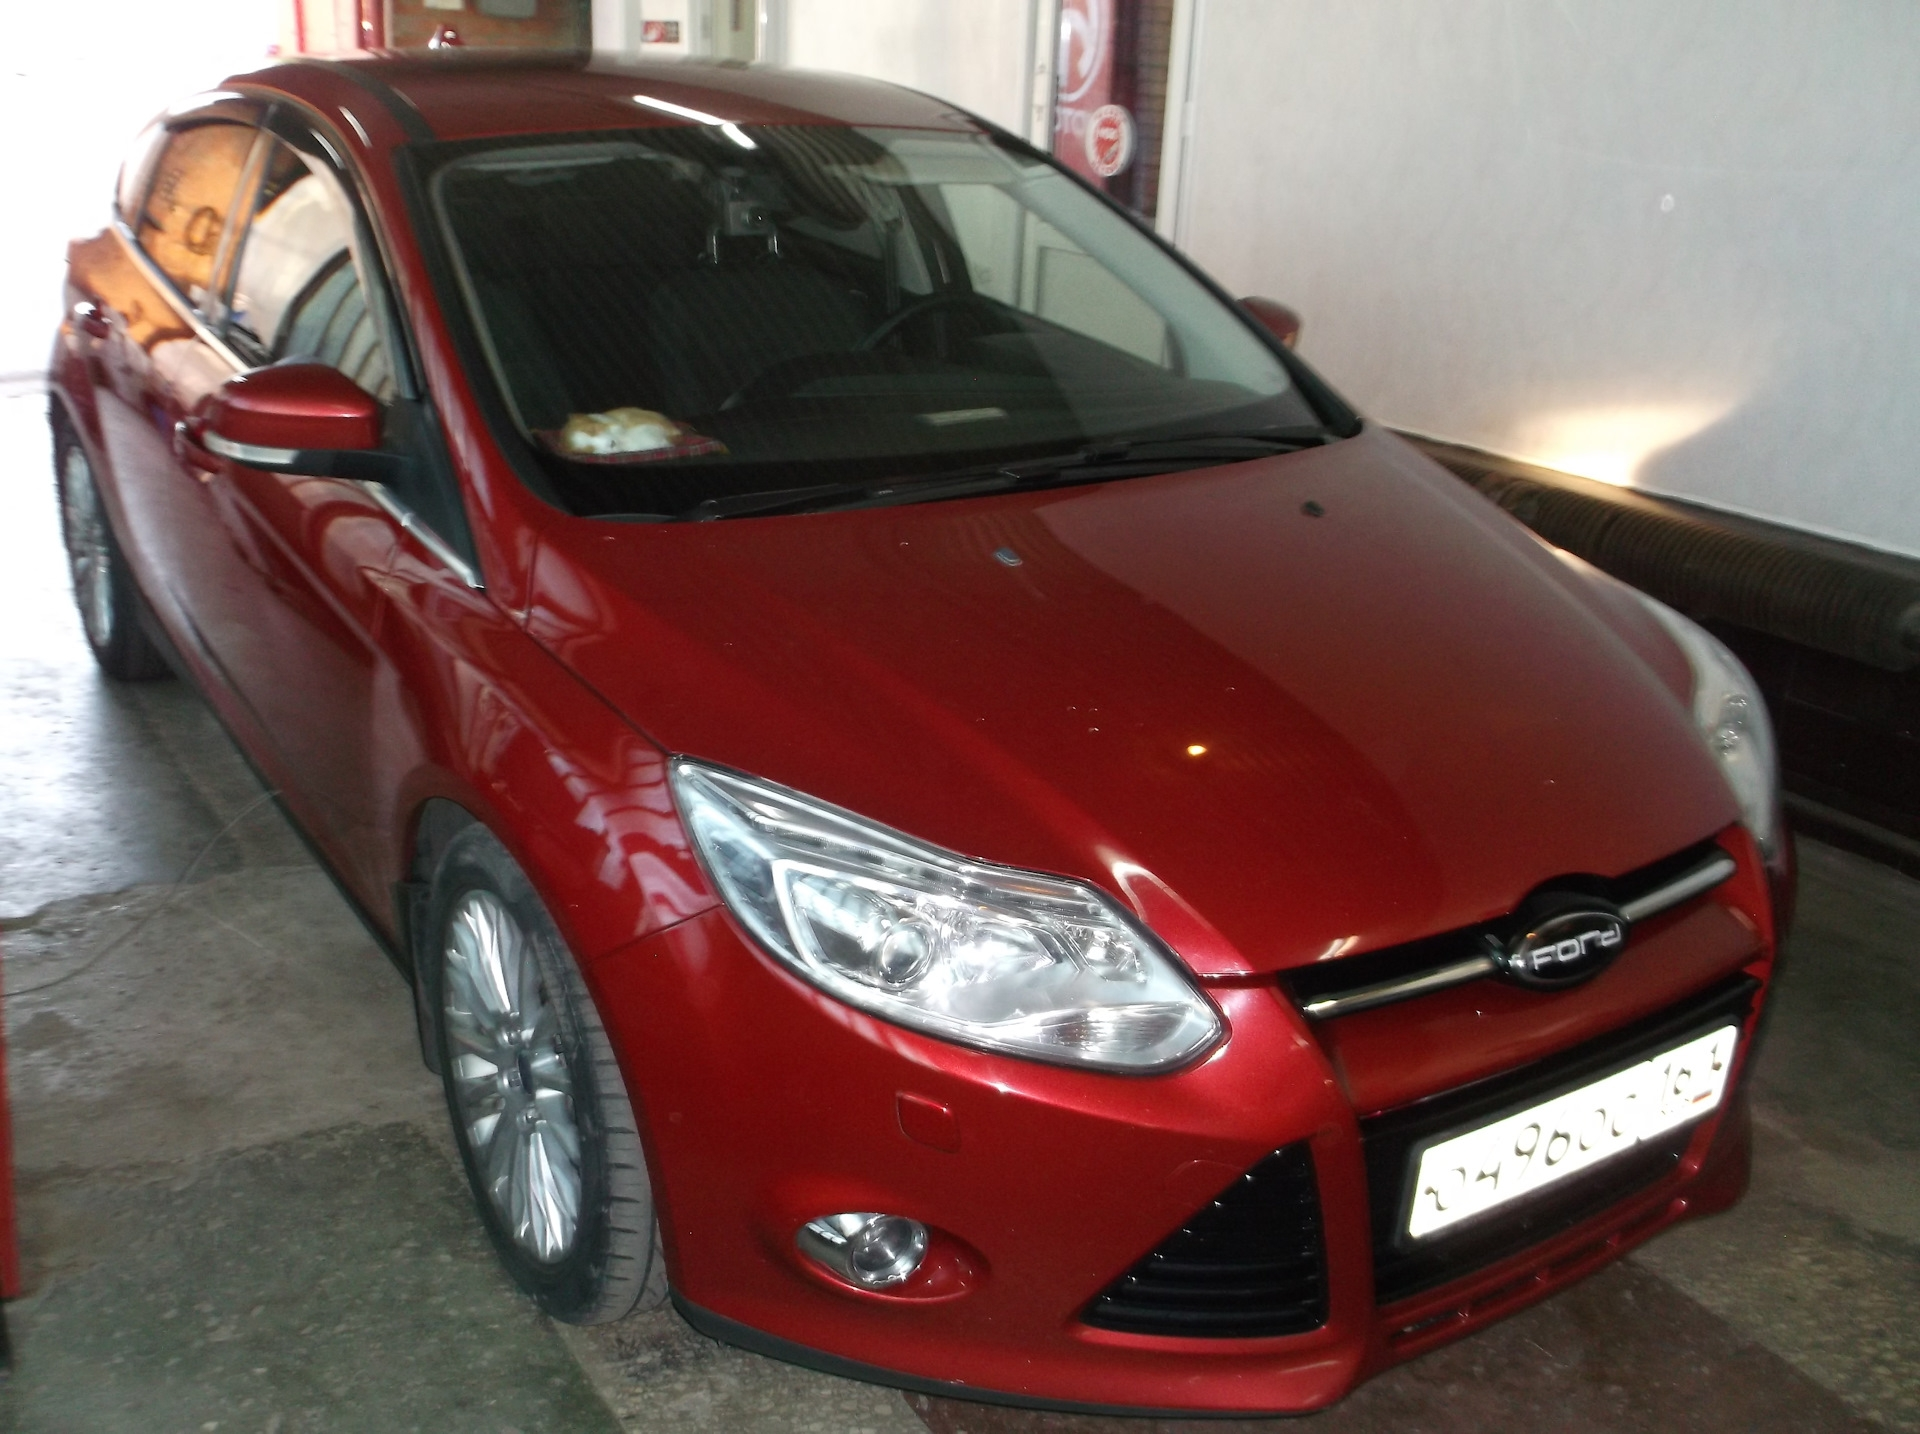 Чип тюнинг Ford Focus 3 Duratec 2.0L 150л.с.